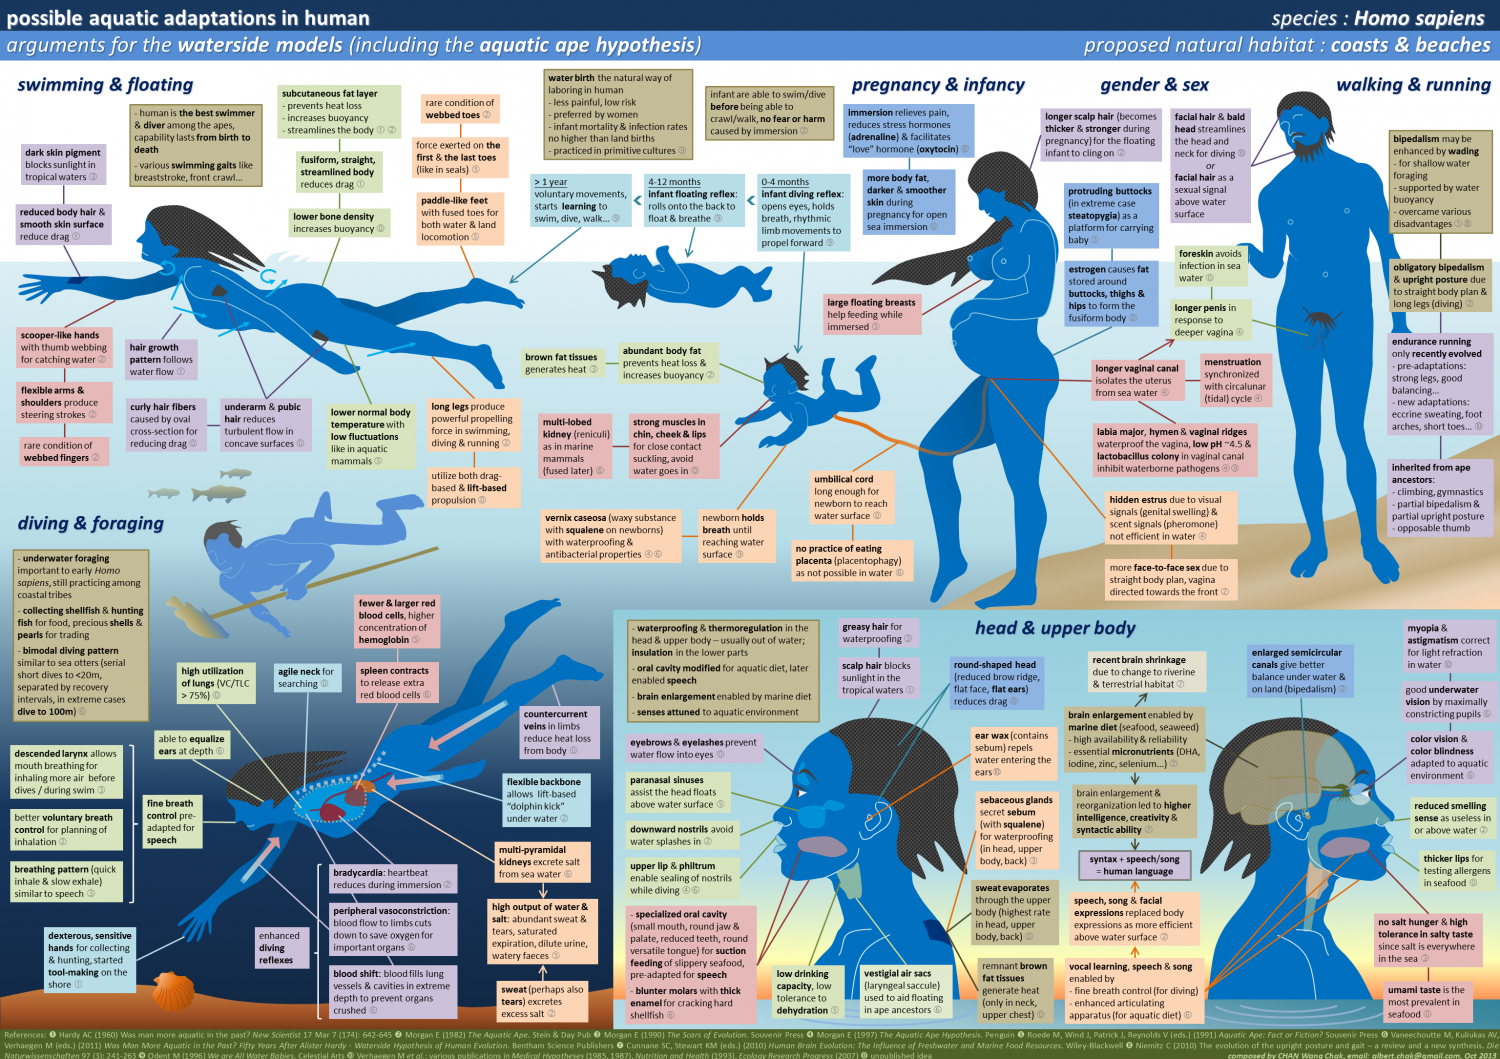 Possible Aquatic Adaptations in Human Infographic